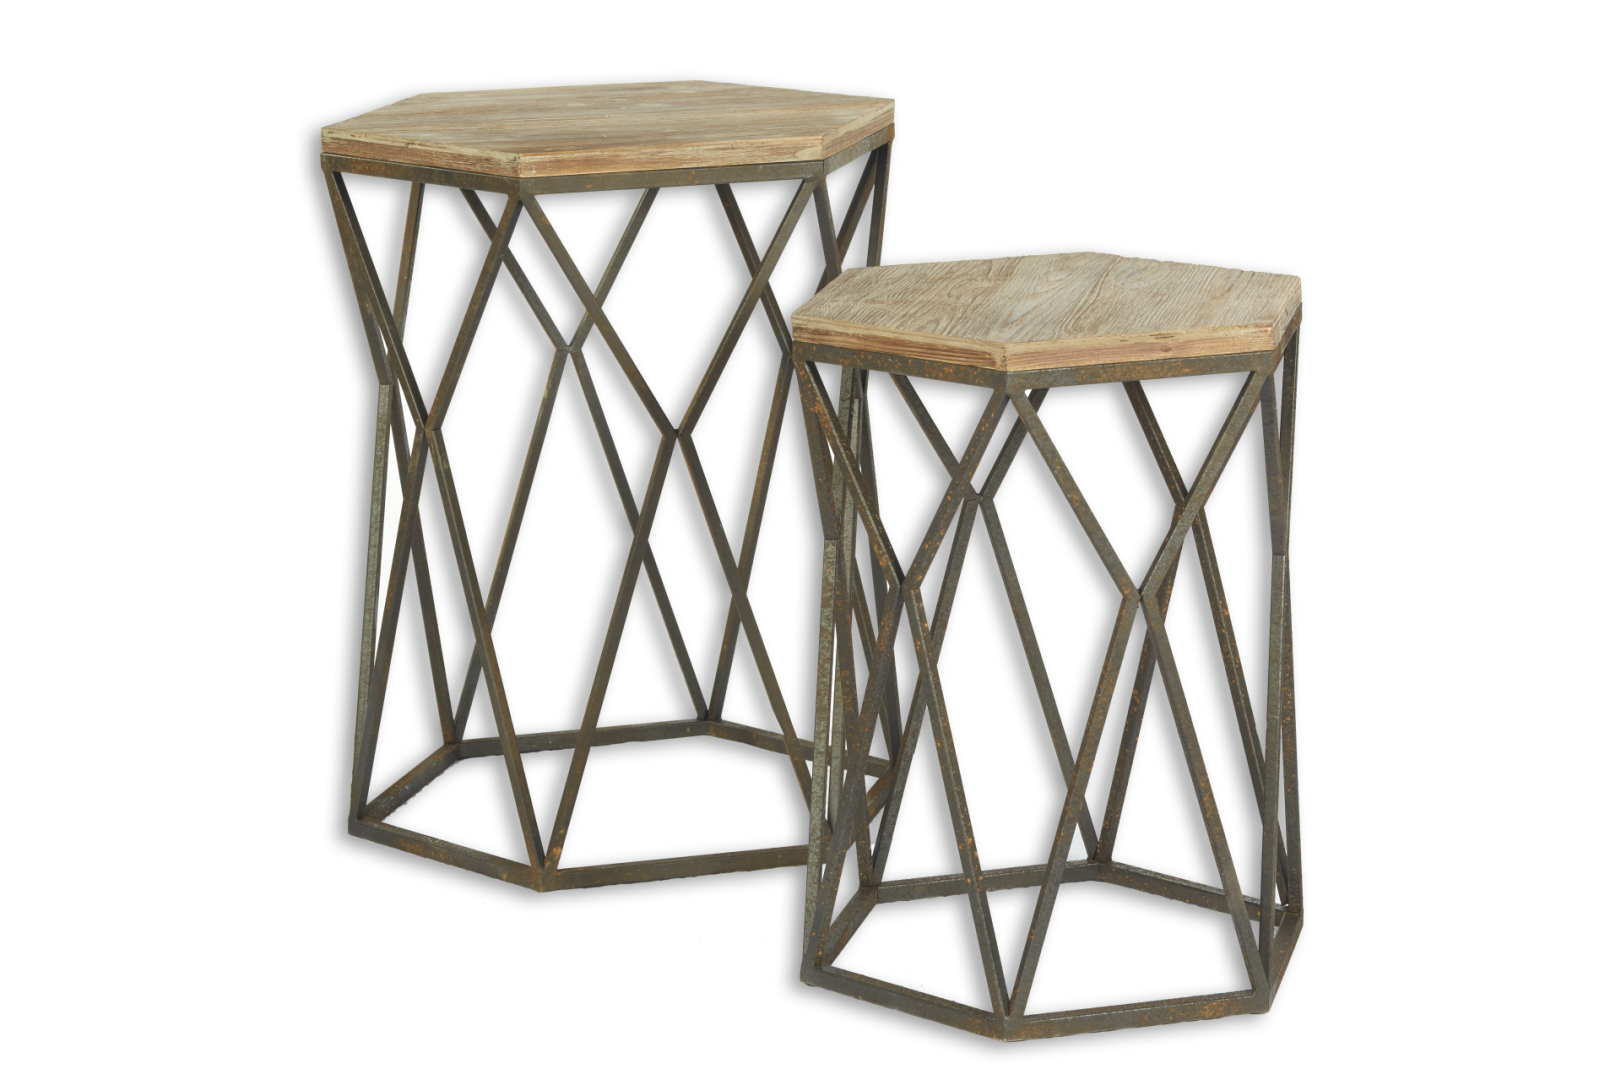 pair wood and metal accent tables perch decor table vintage brass side small bedroom round glass foyer gray pine desk narrow console with shelves chair lounge chairs silver drum